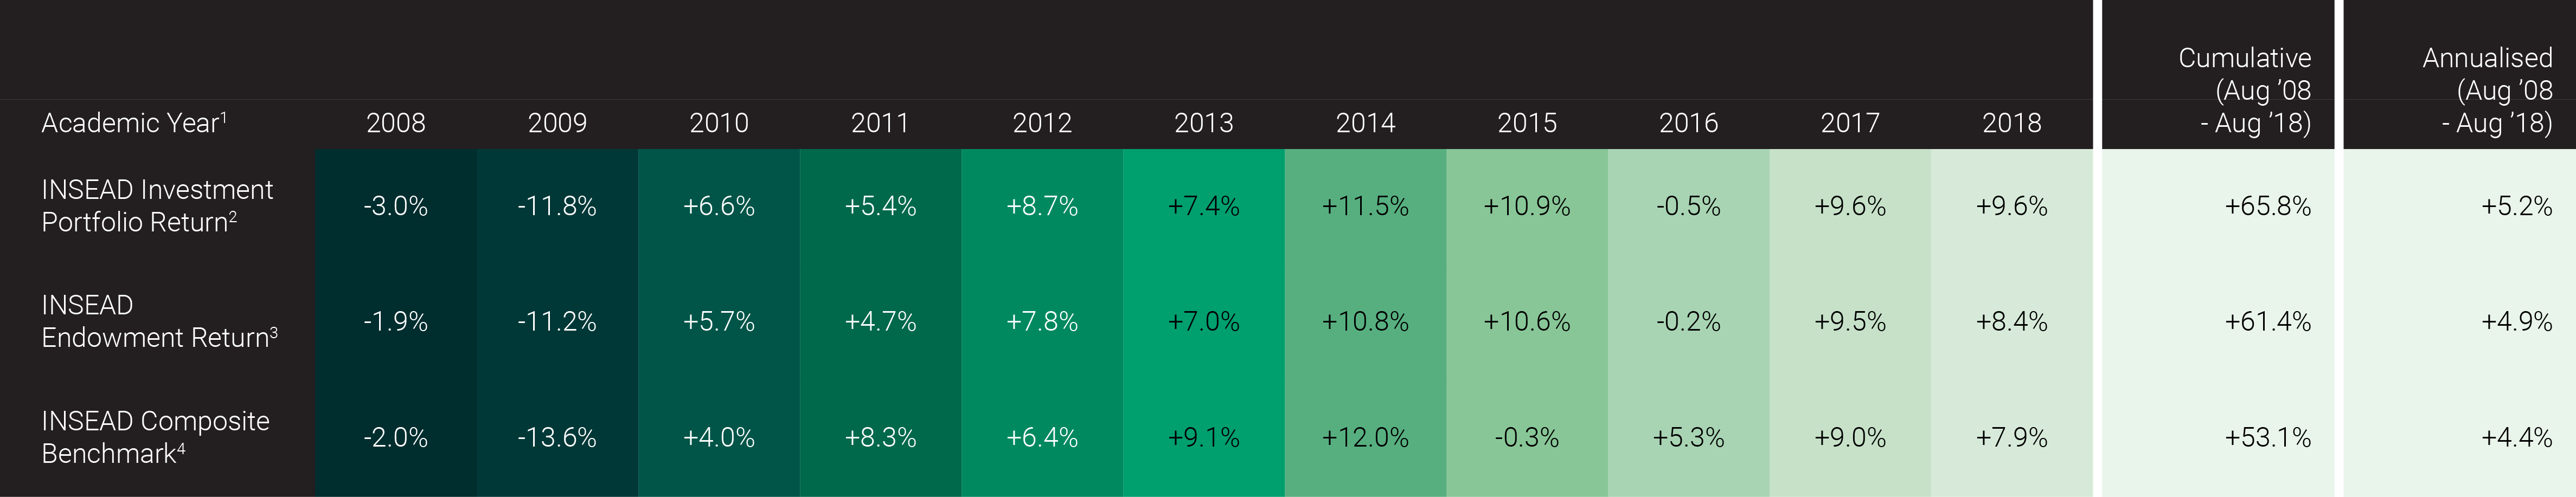 INSEAD endowment and investment portfolio performance – academic year performance (August 2008 - August 2018)